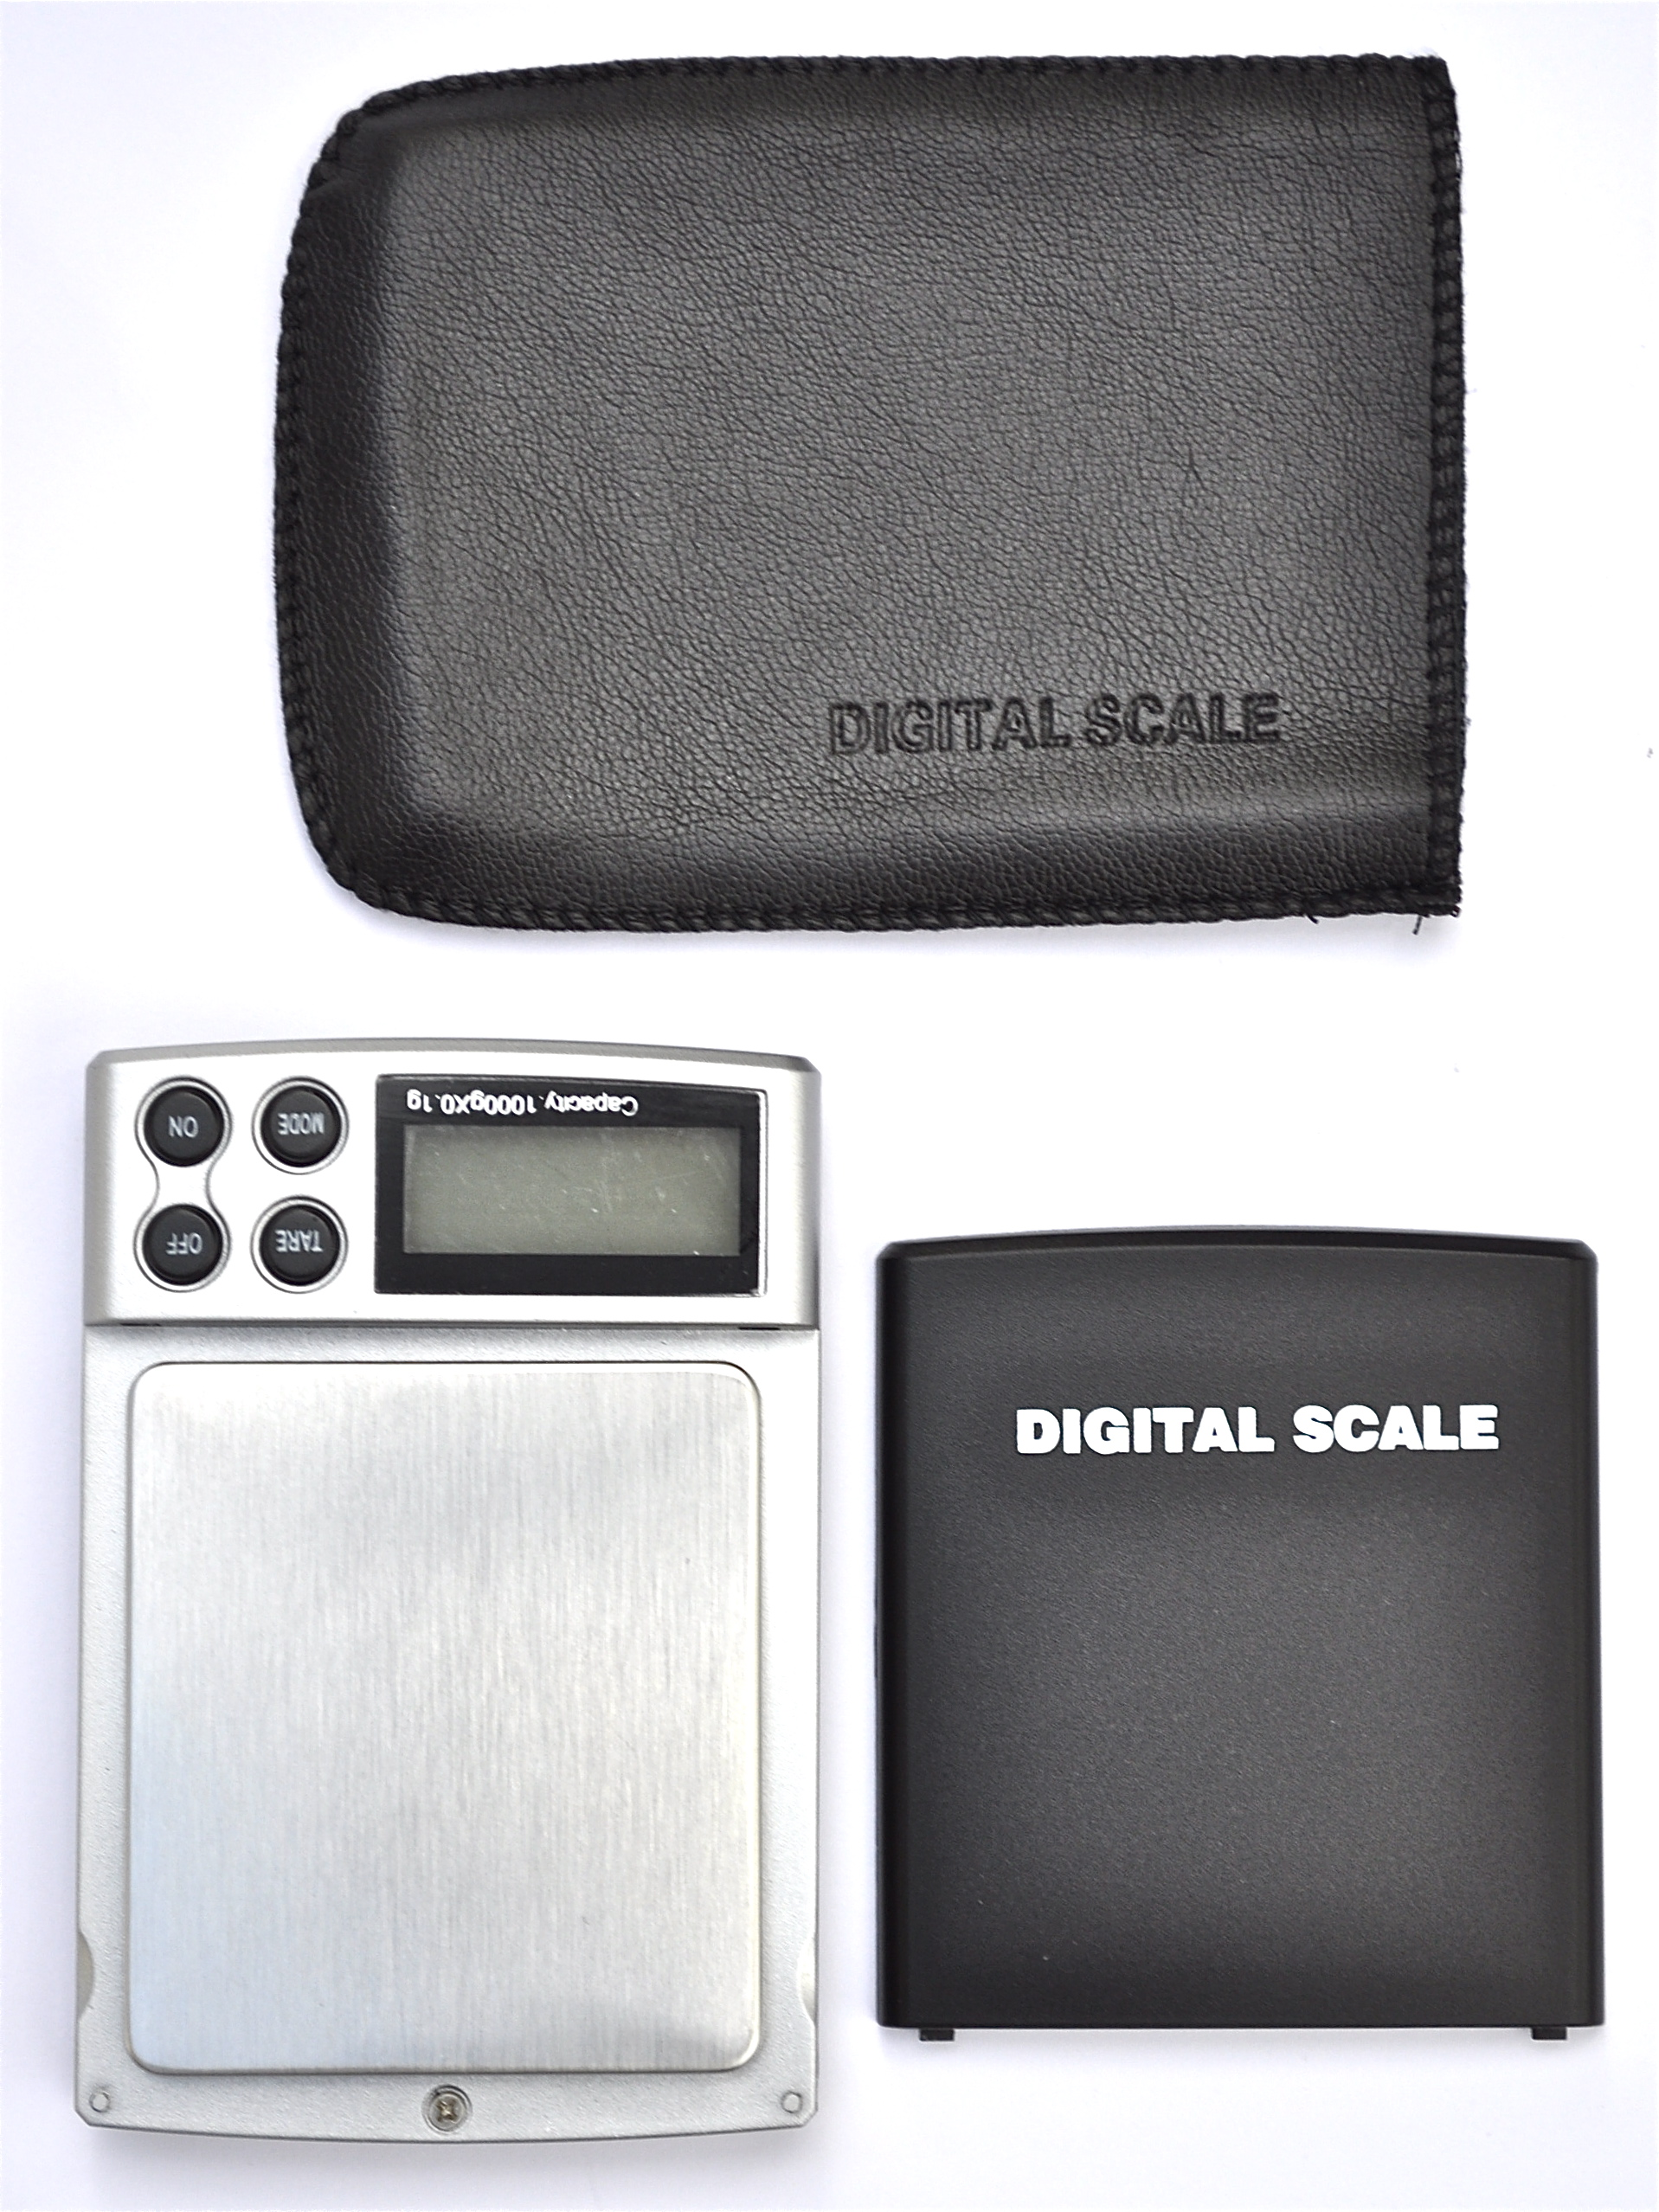 digital scale pocket size digit.